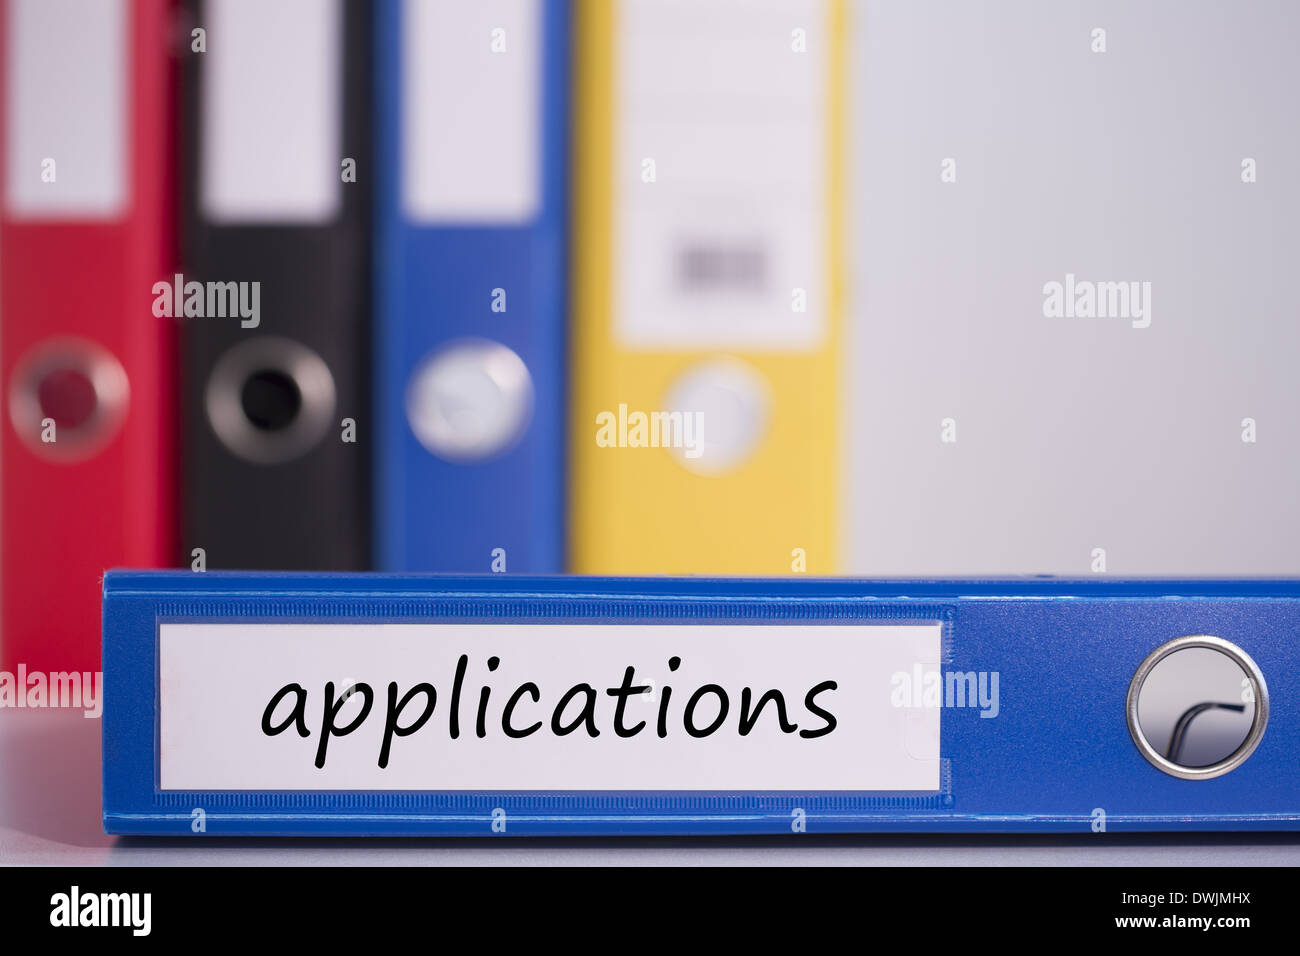 Applications on blue business binder Stock Photo